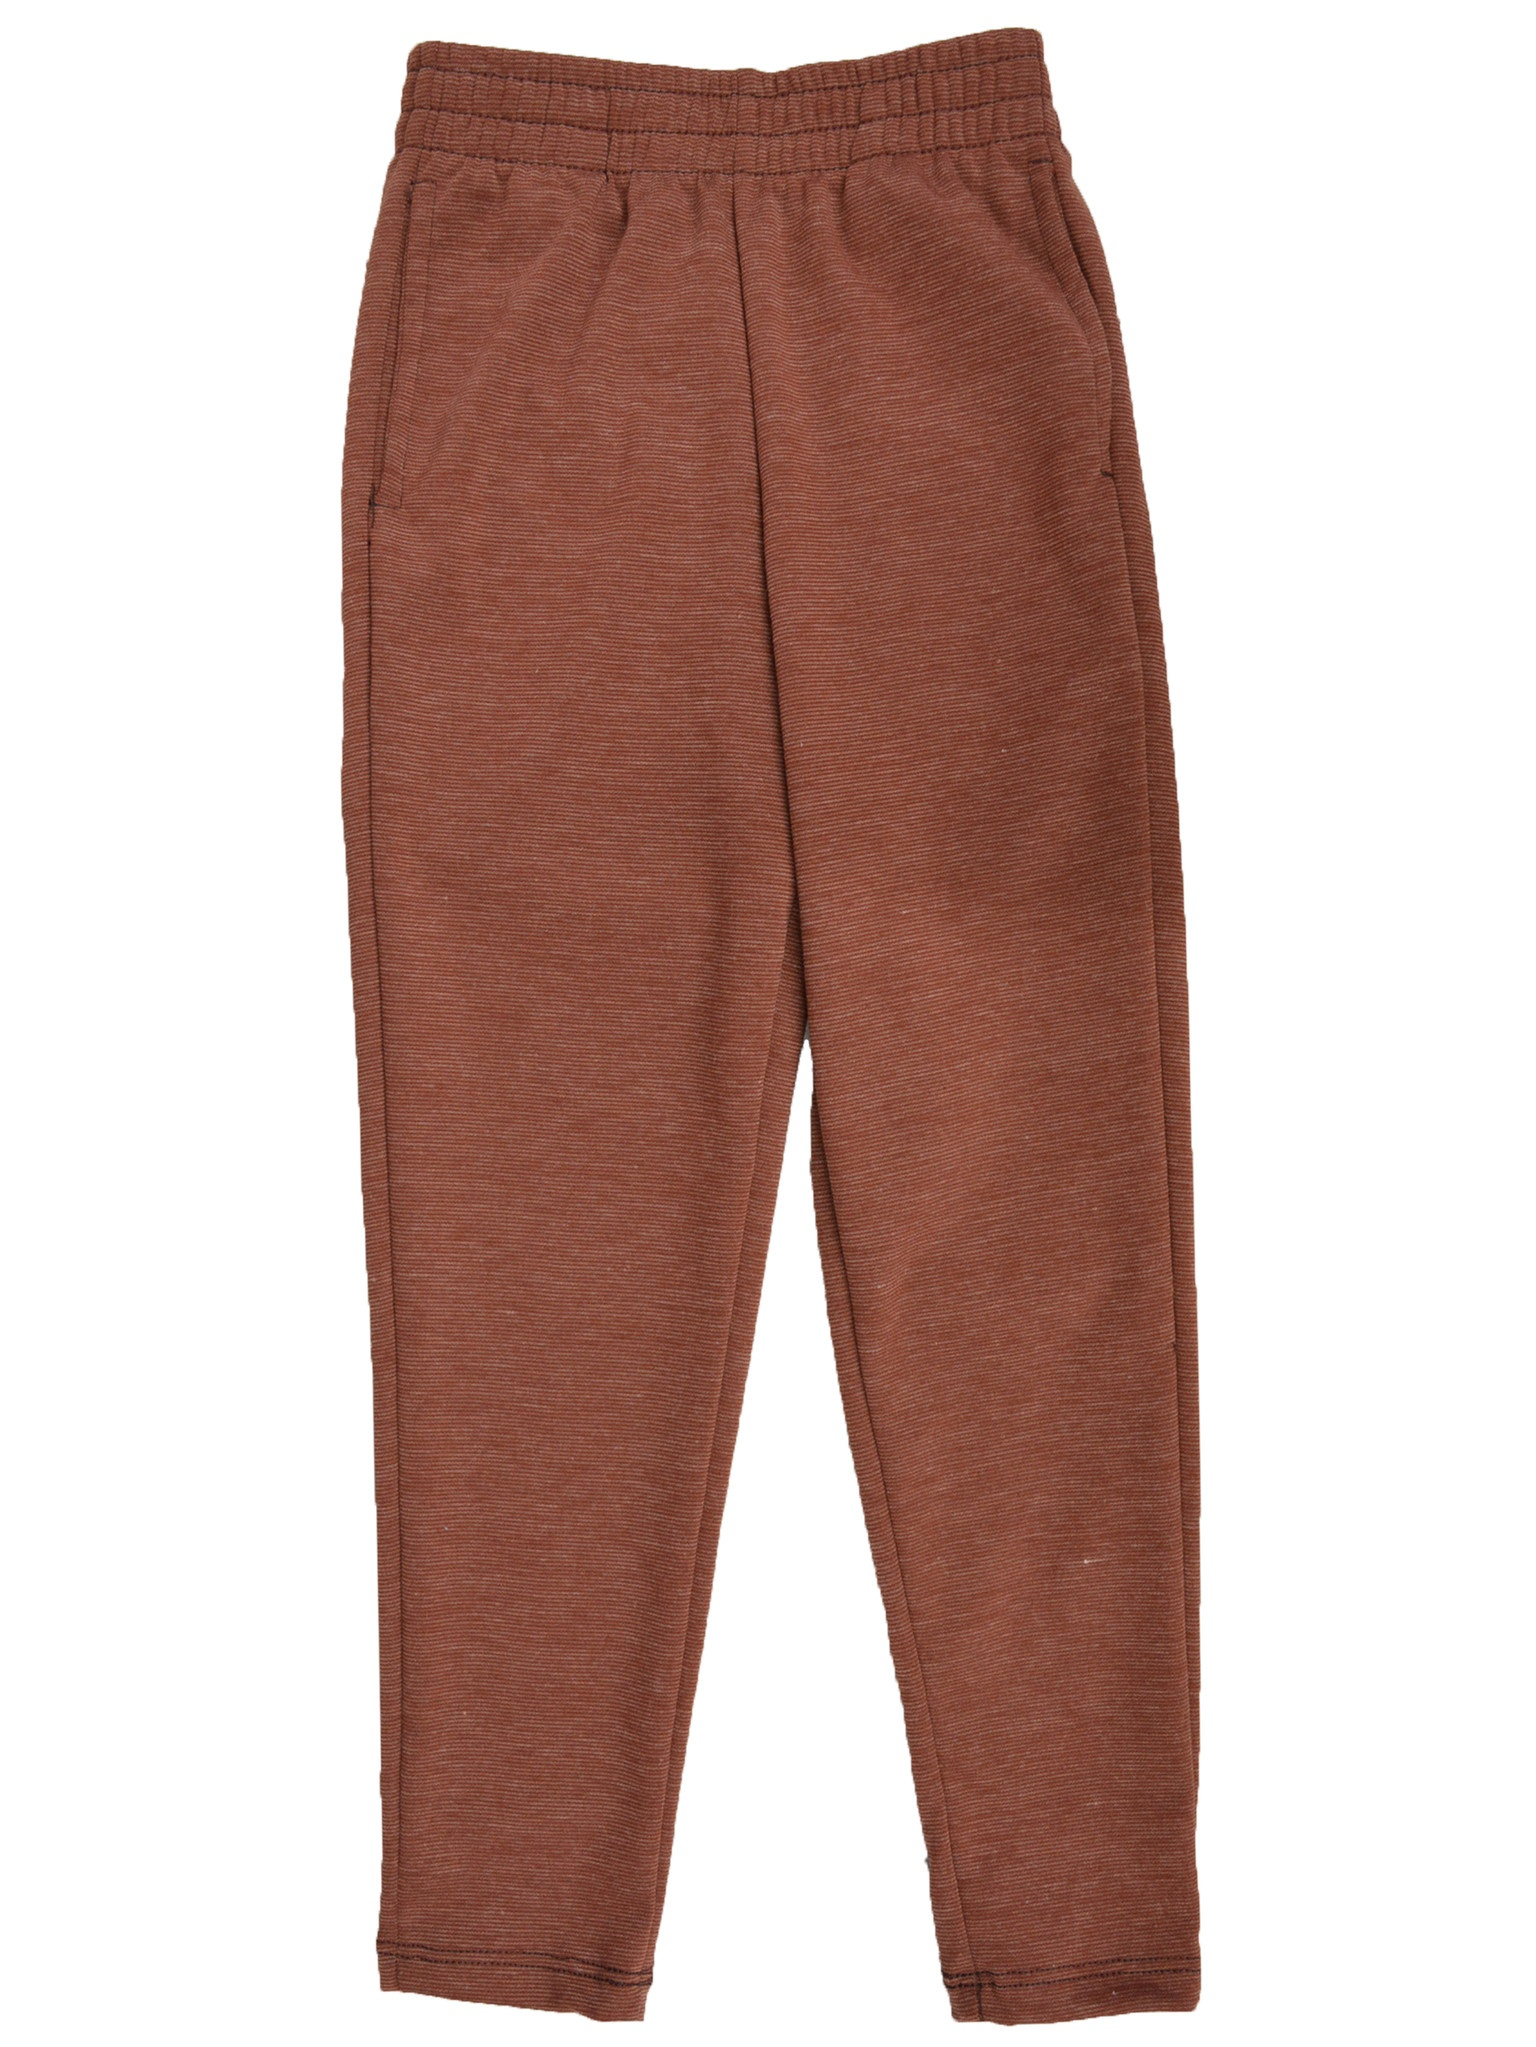 Boy's Slim Fit Jogger Play Pant - Small 6 / Brown